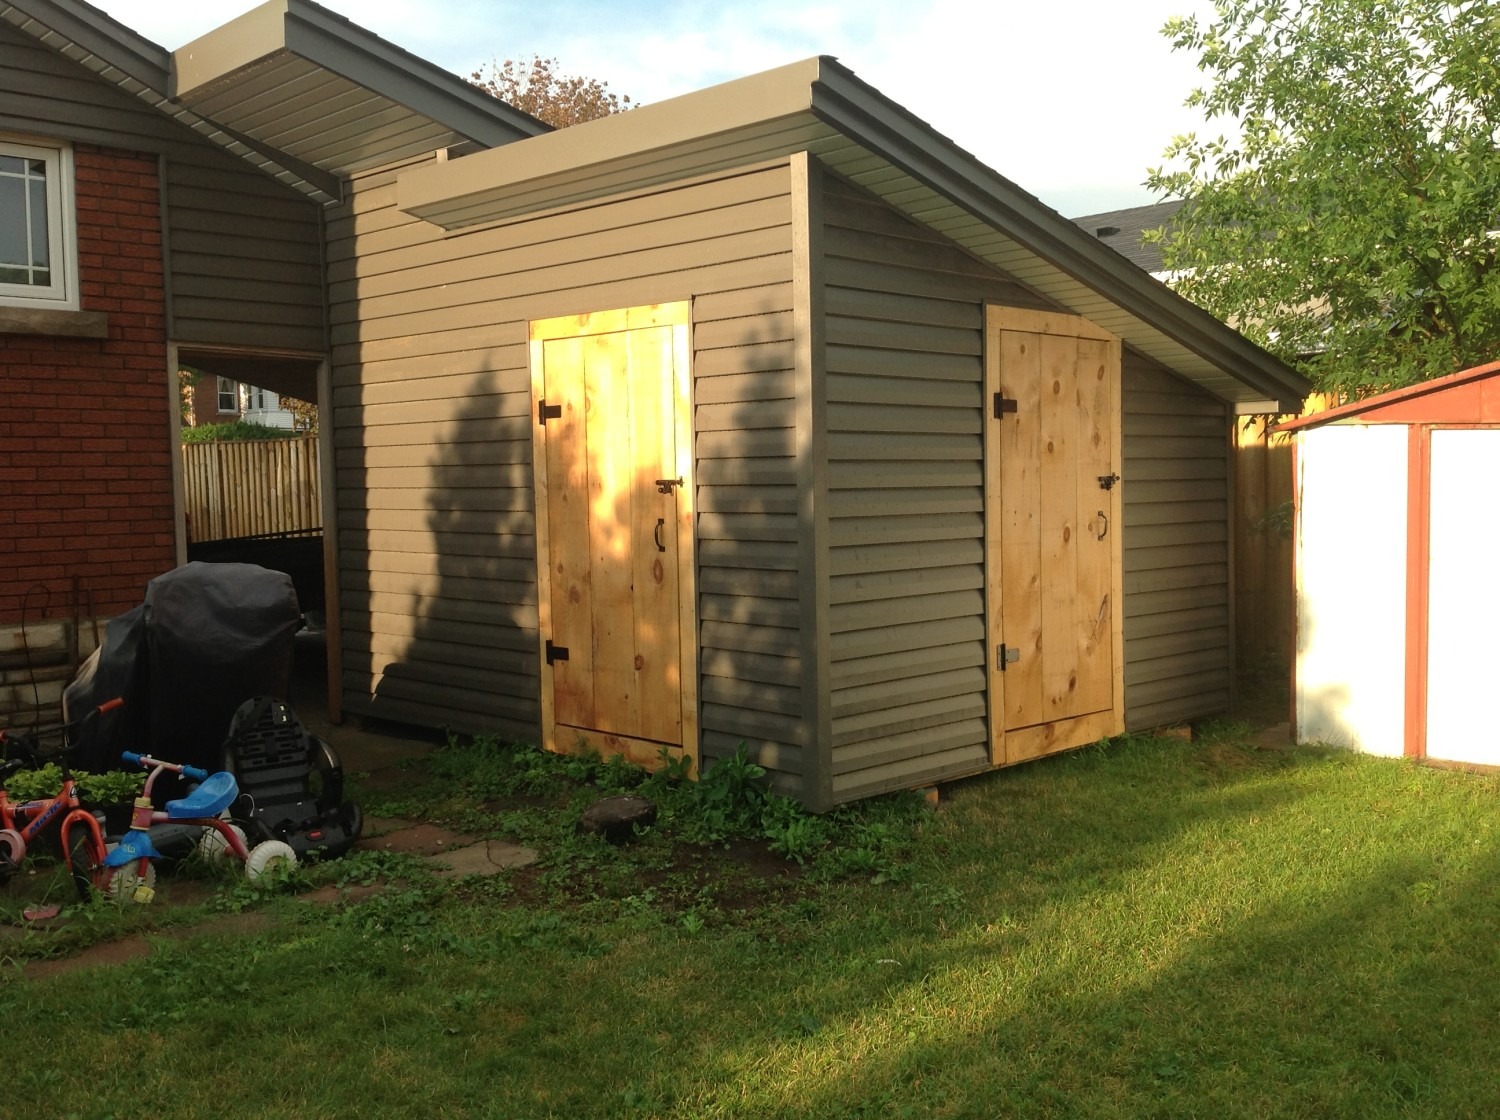 vertical x w outdoors p inch canada the and depot outdoor ft home categories medium sheds garden structures en